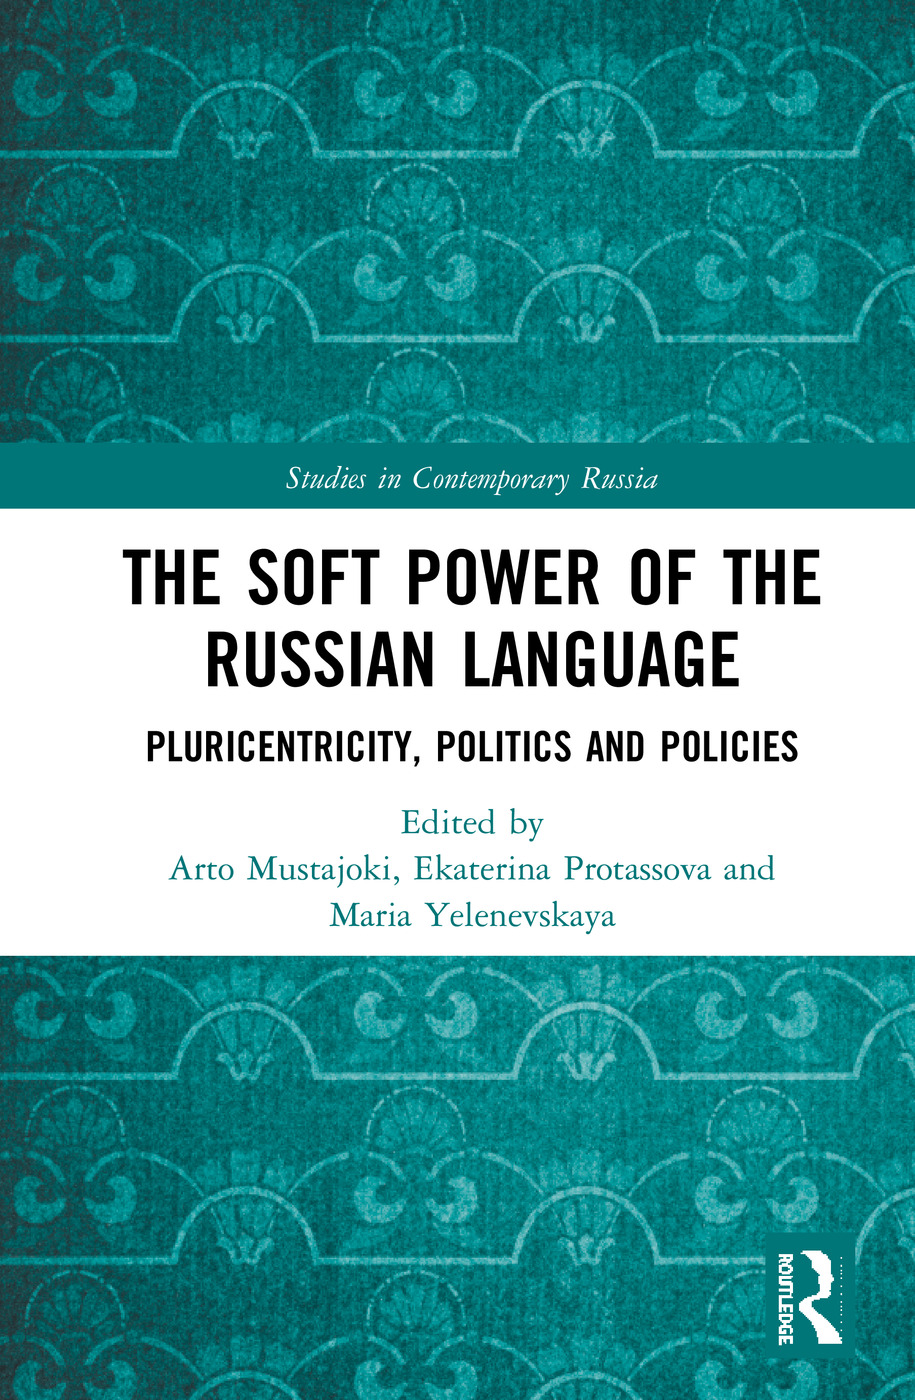 The Soft Power of the Russian Language: Pluricentricity, Politics and Policies book cover